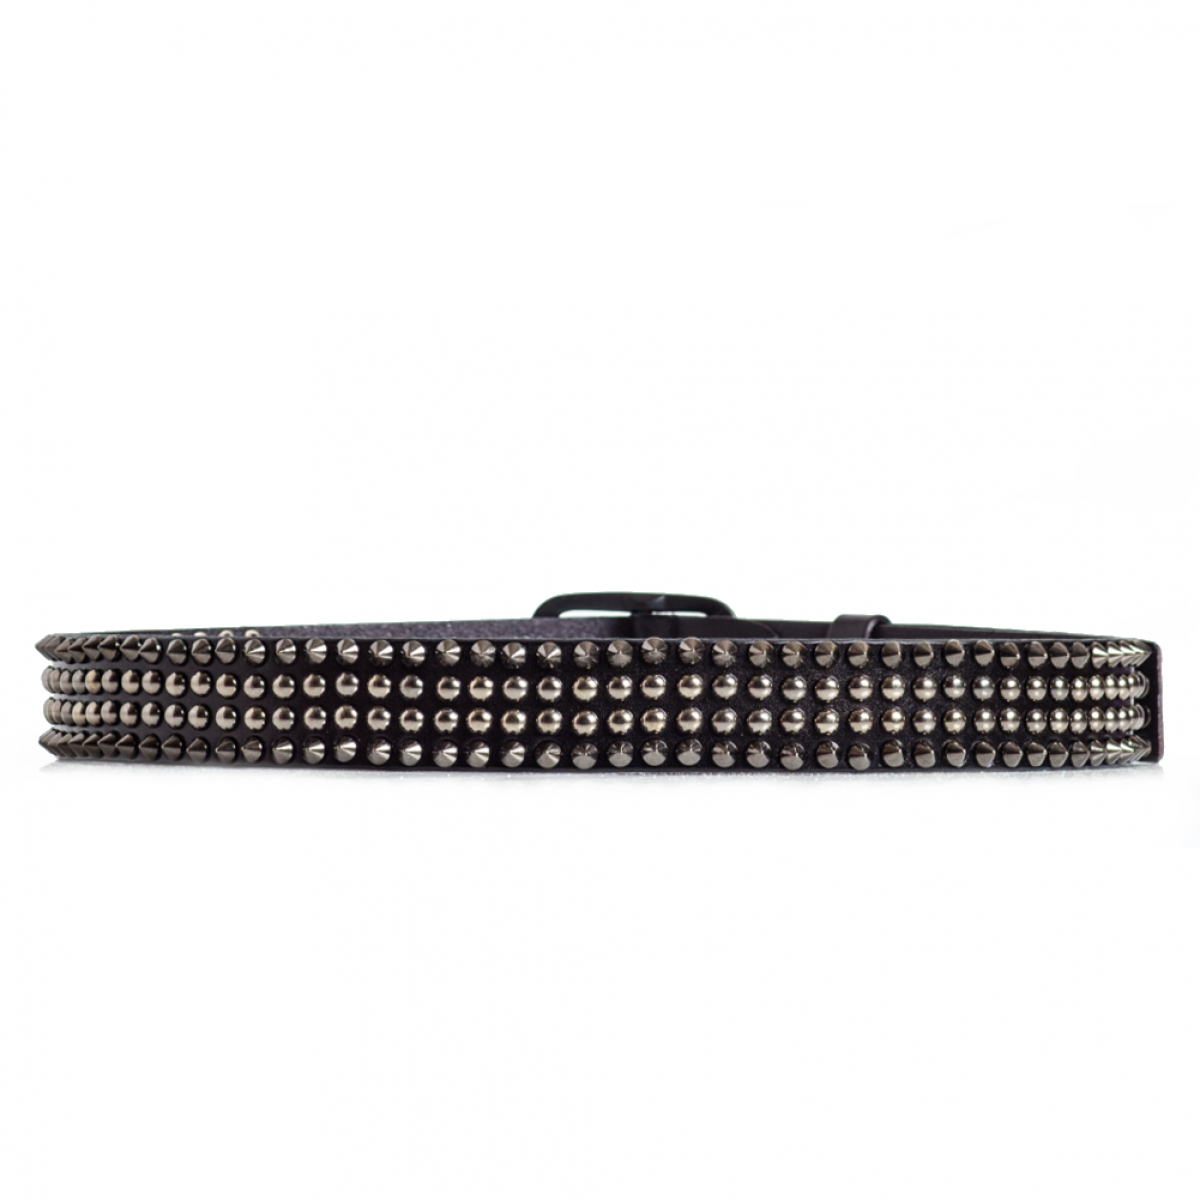 Spiked Leather Belt Black Sizes 30 44in Laticci